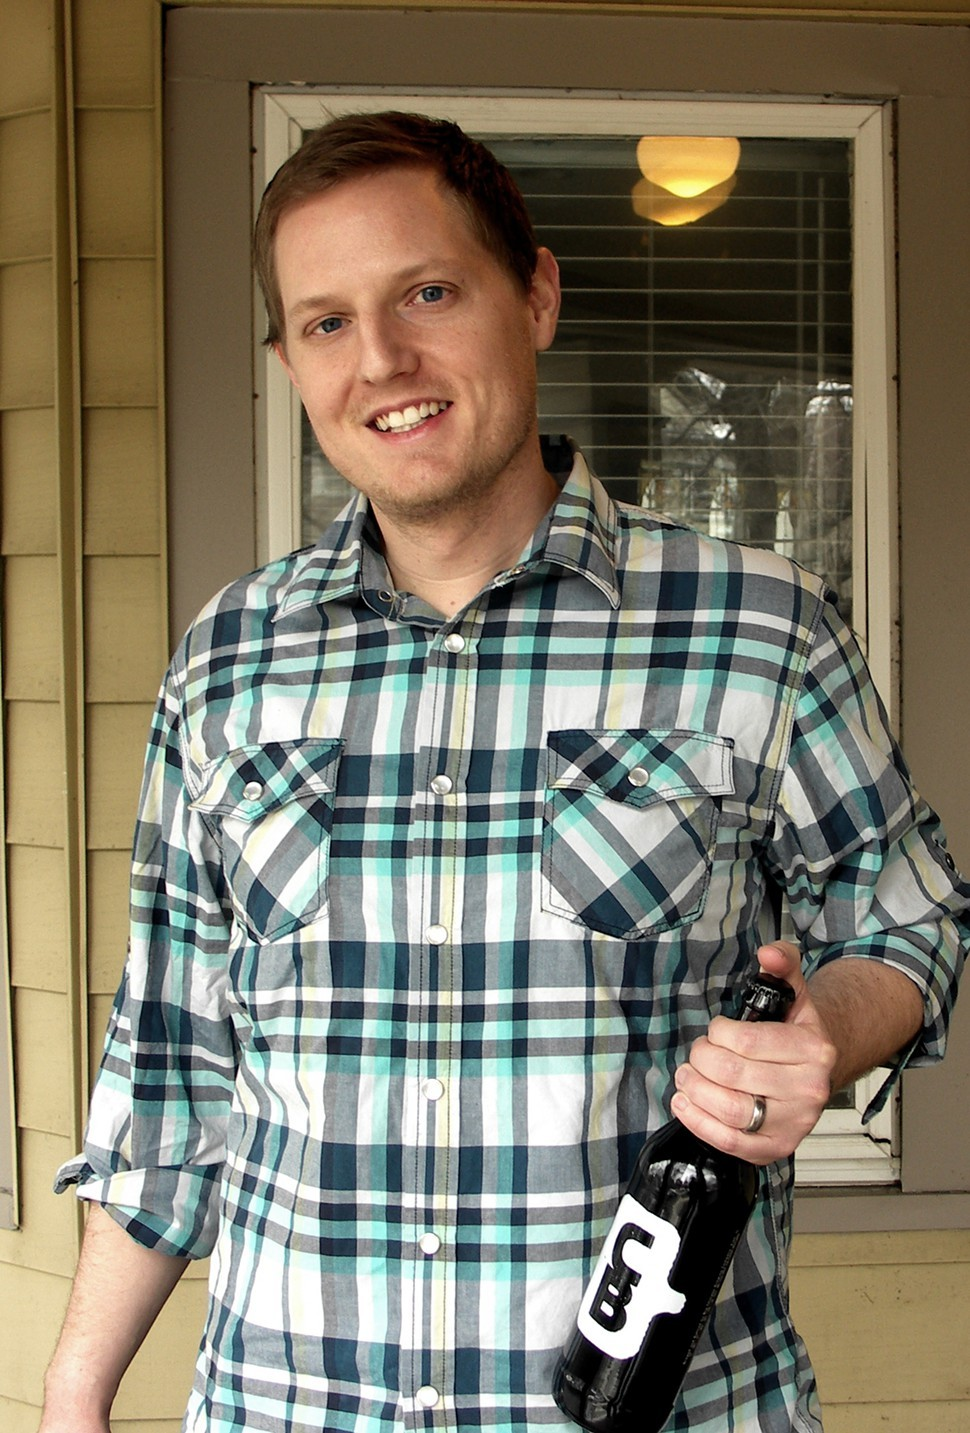 Cahoots founder Dustin Adkison takes a bottle out to his porch for some fresh air.